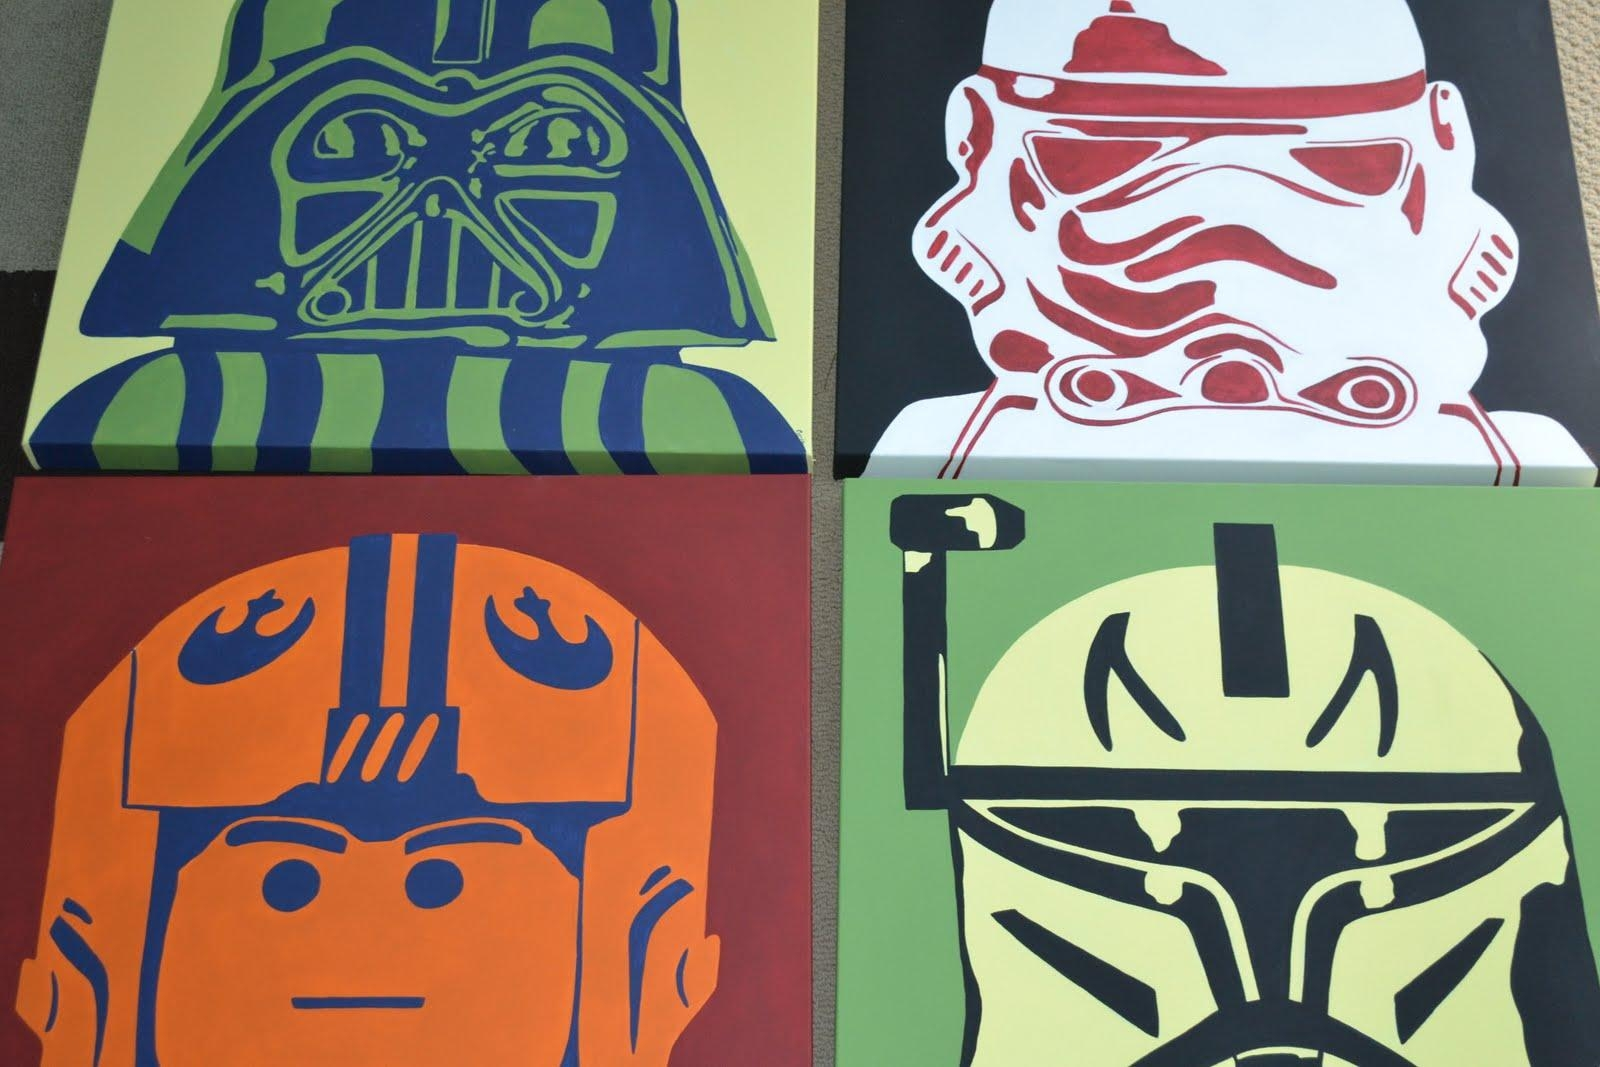 You're Artcorie Kline: Star Wars Legos Pop Art pertaining to Lego Star Wars Wall Art